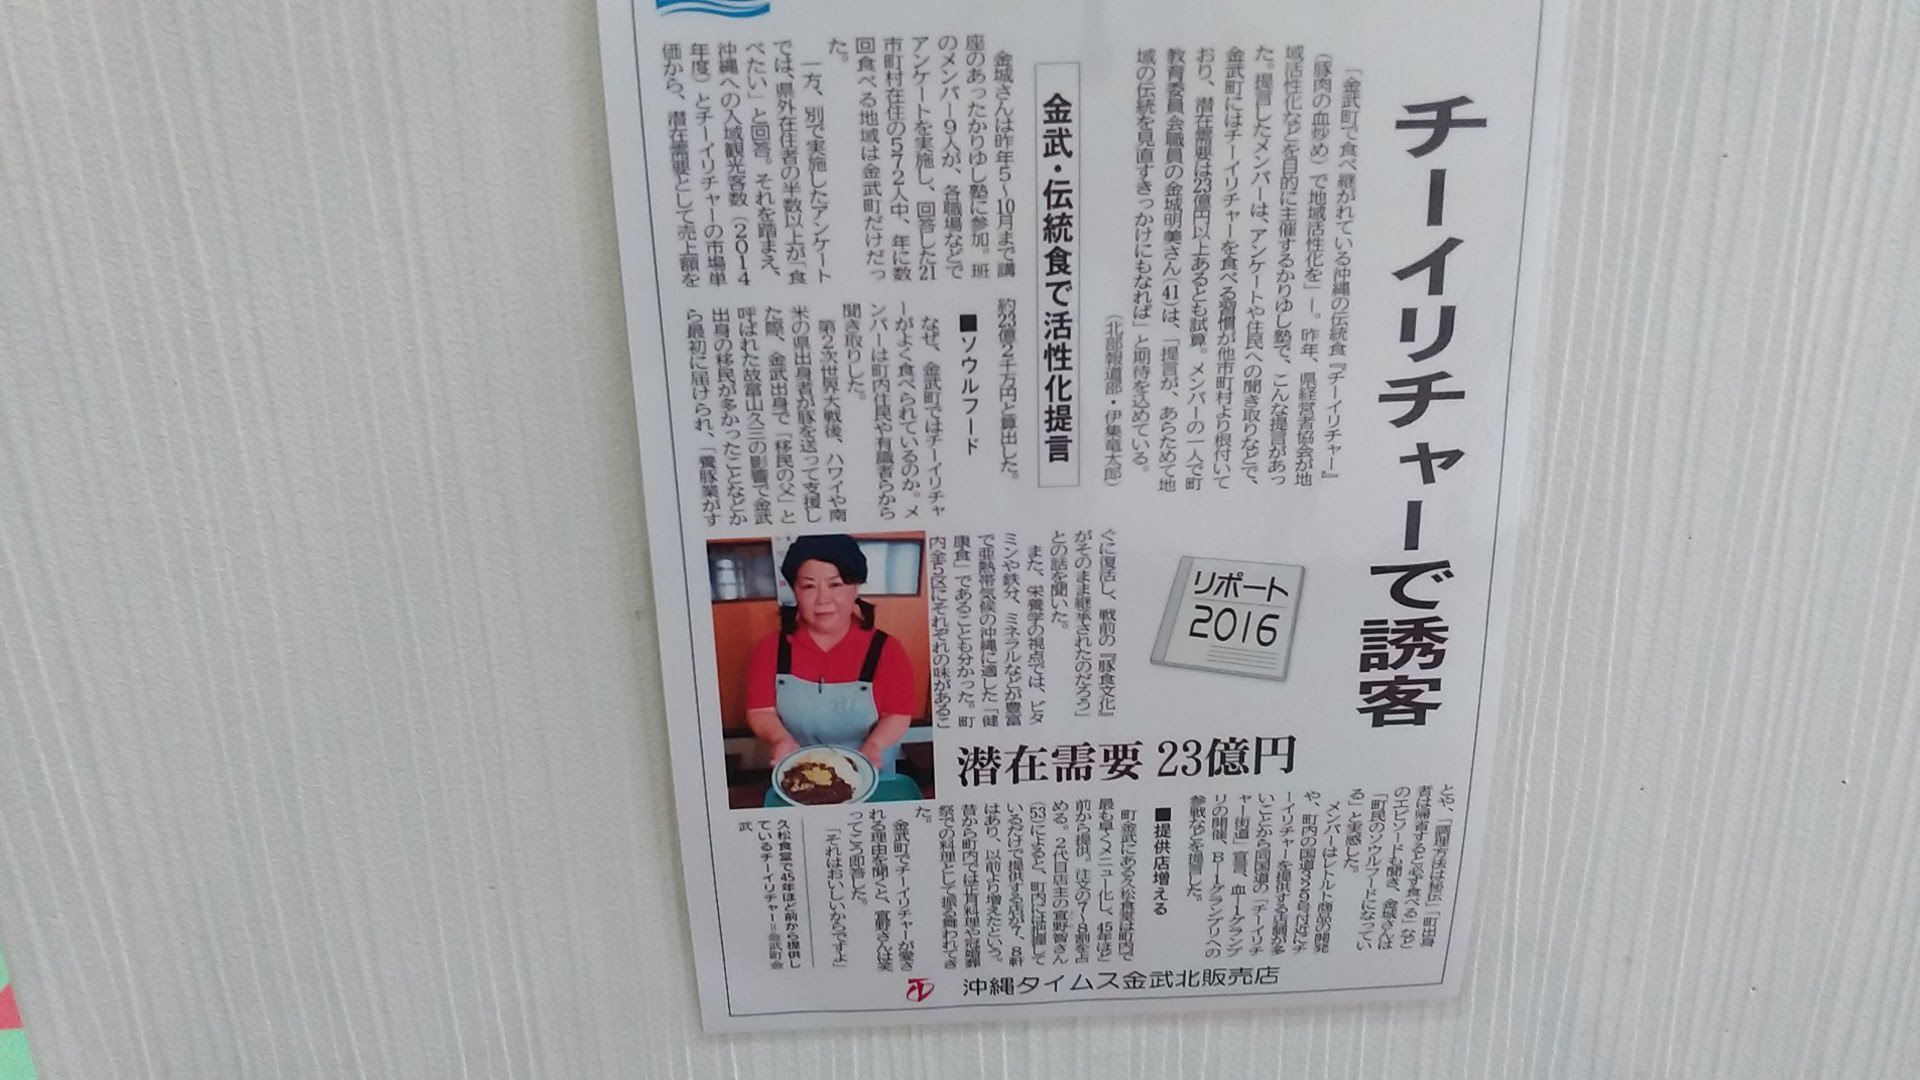 Hisamatsu Shokudou has been taken up also in local newspapers 2